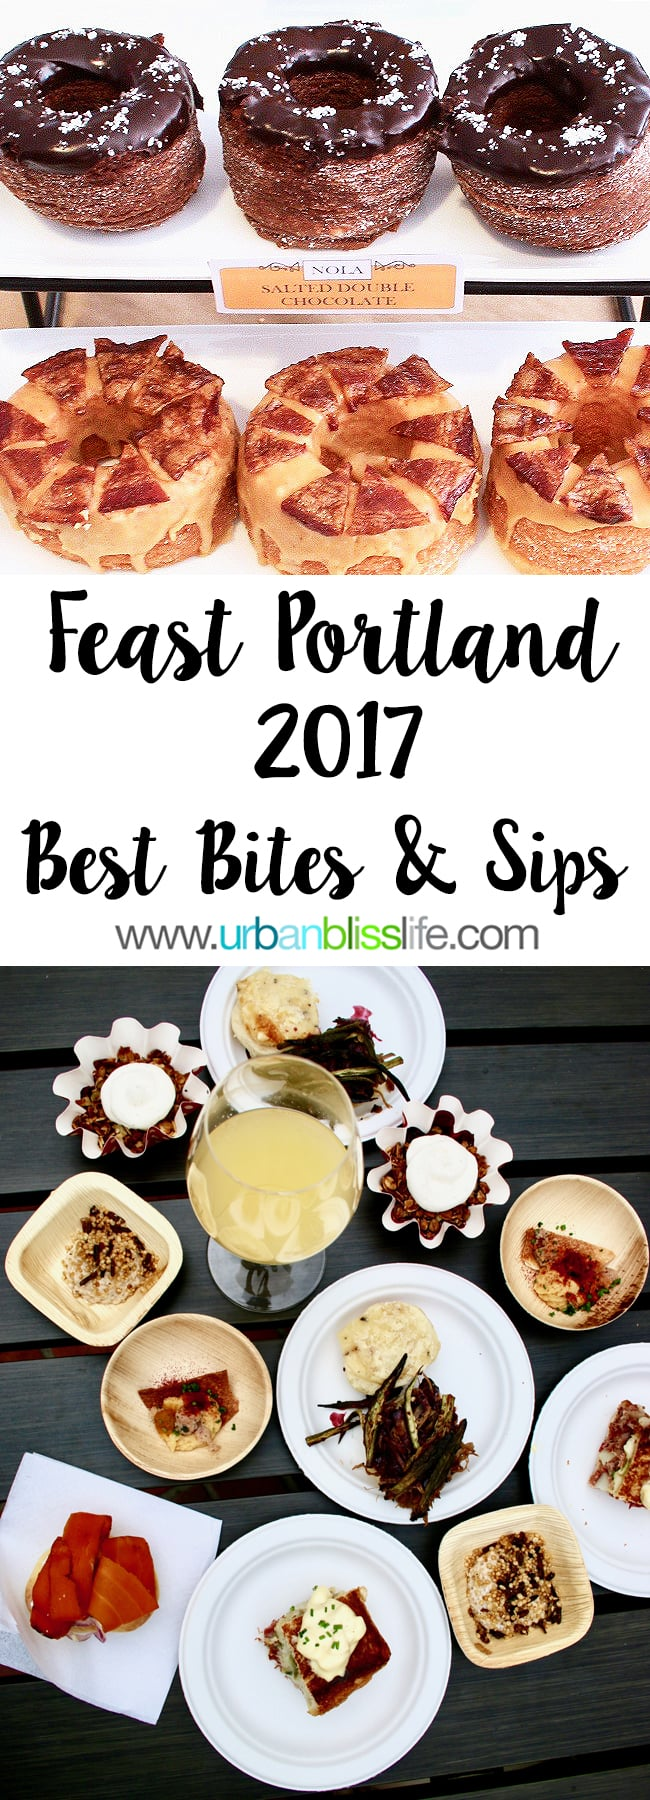 Feast Portland 2017 Best Bites and Sips, Grand Tasting, on UrbanBlissLife.com